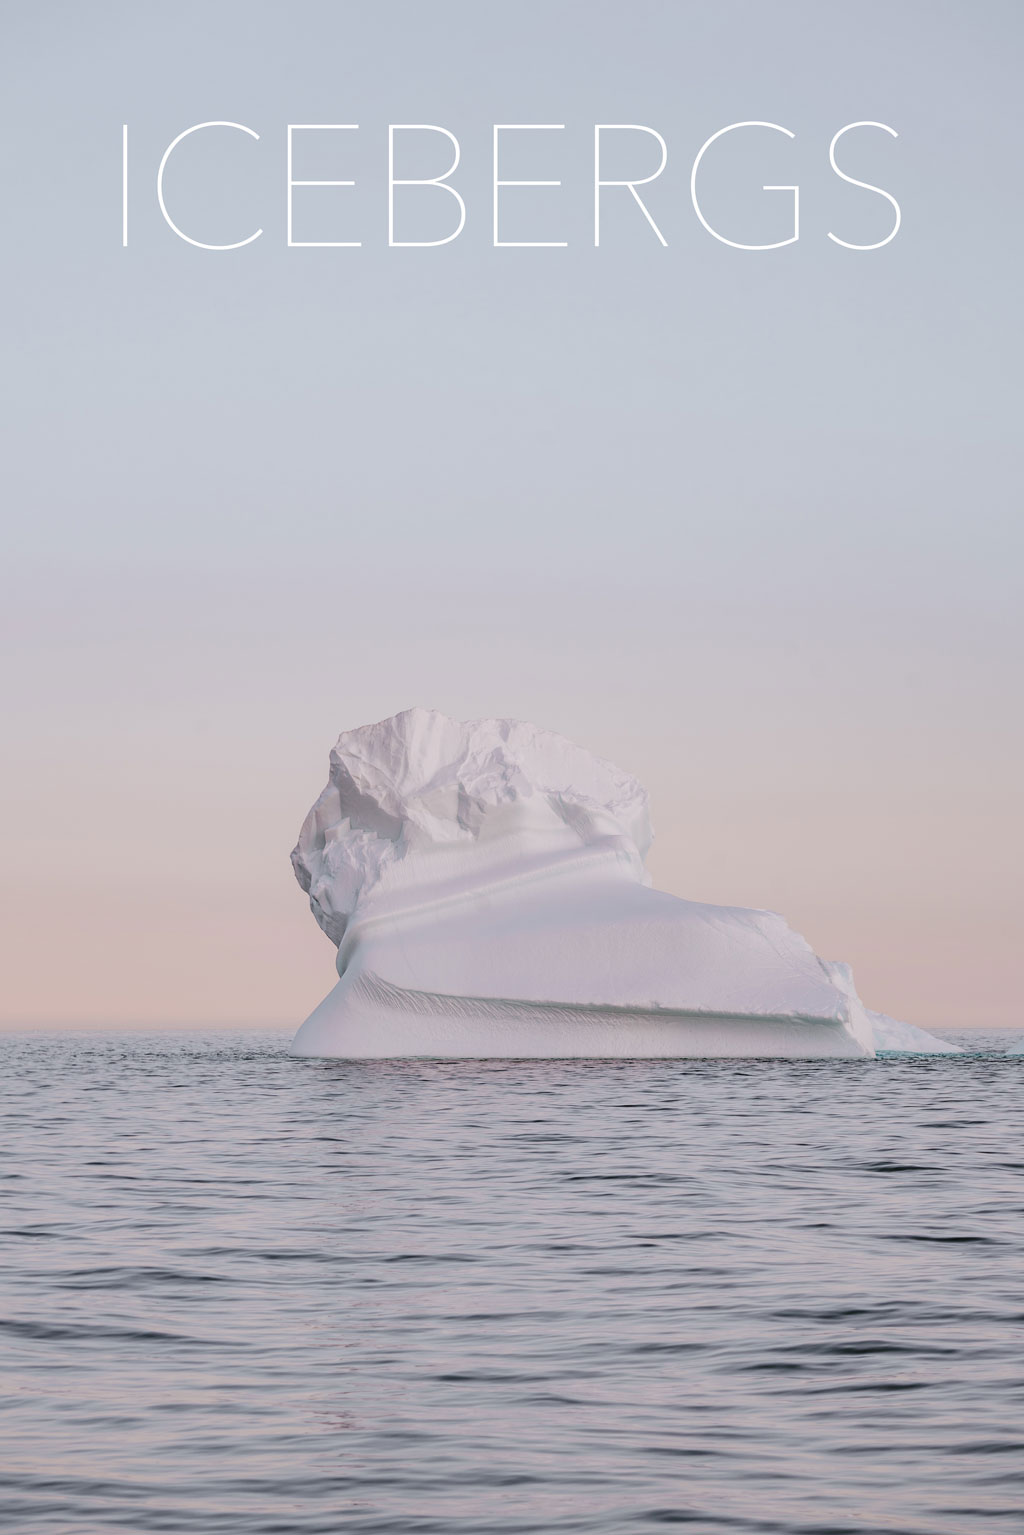 Iceberg in the ocean against a pastel sky, with the title of the piece in the upper third of the image